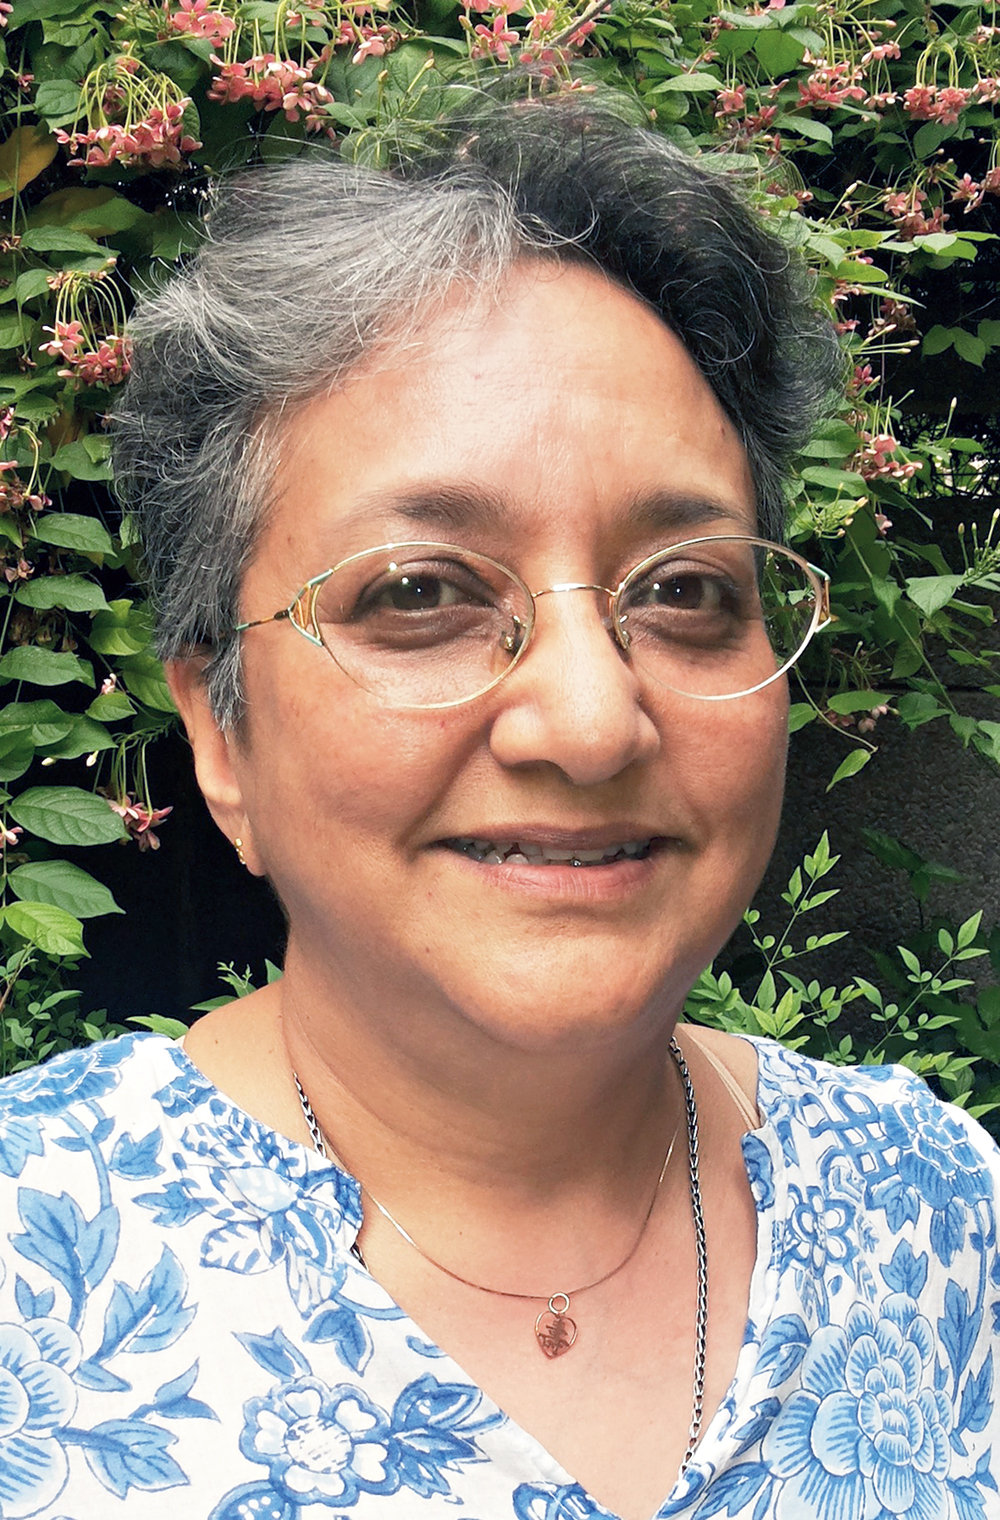 Manjula Padmanabhan is a writer, artist, cartoonist and playwright. Harvest, her fifth play, won the 1997 Onassis Prize for Theatre in Greece. She is the author of several critically acclaimed books, including Getting There, The Island of Lost Girls and more.